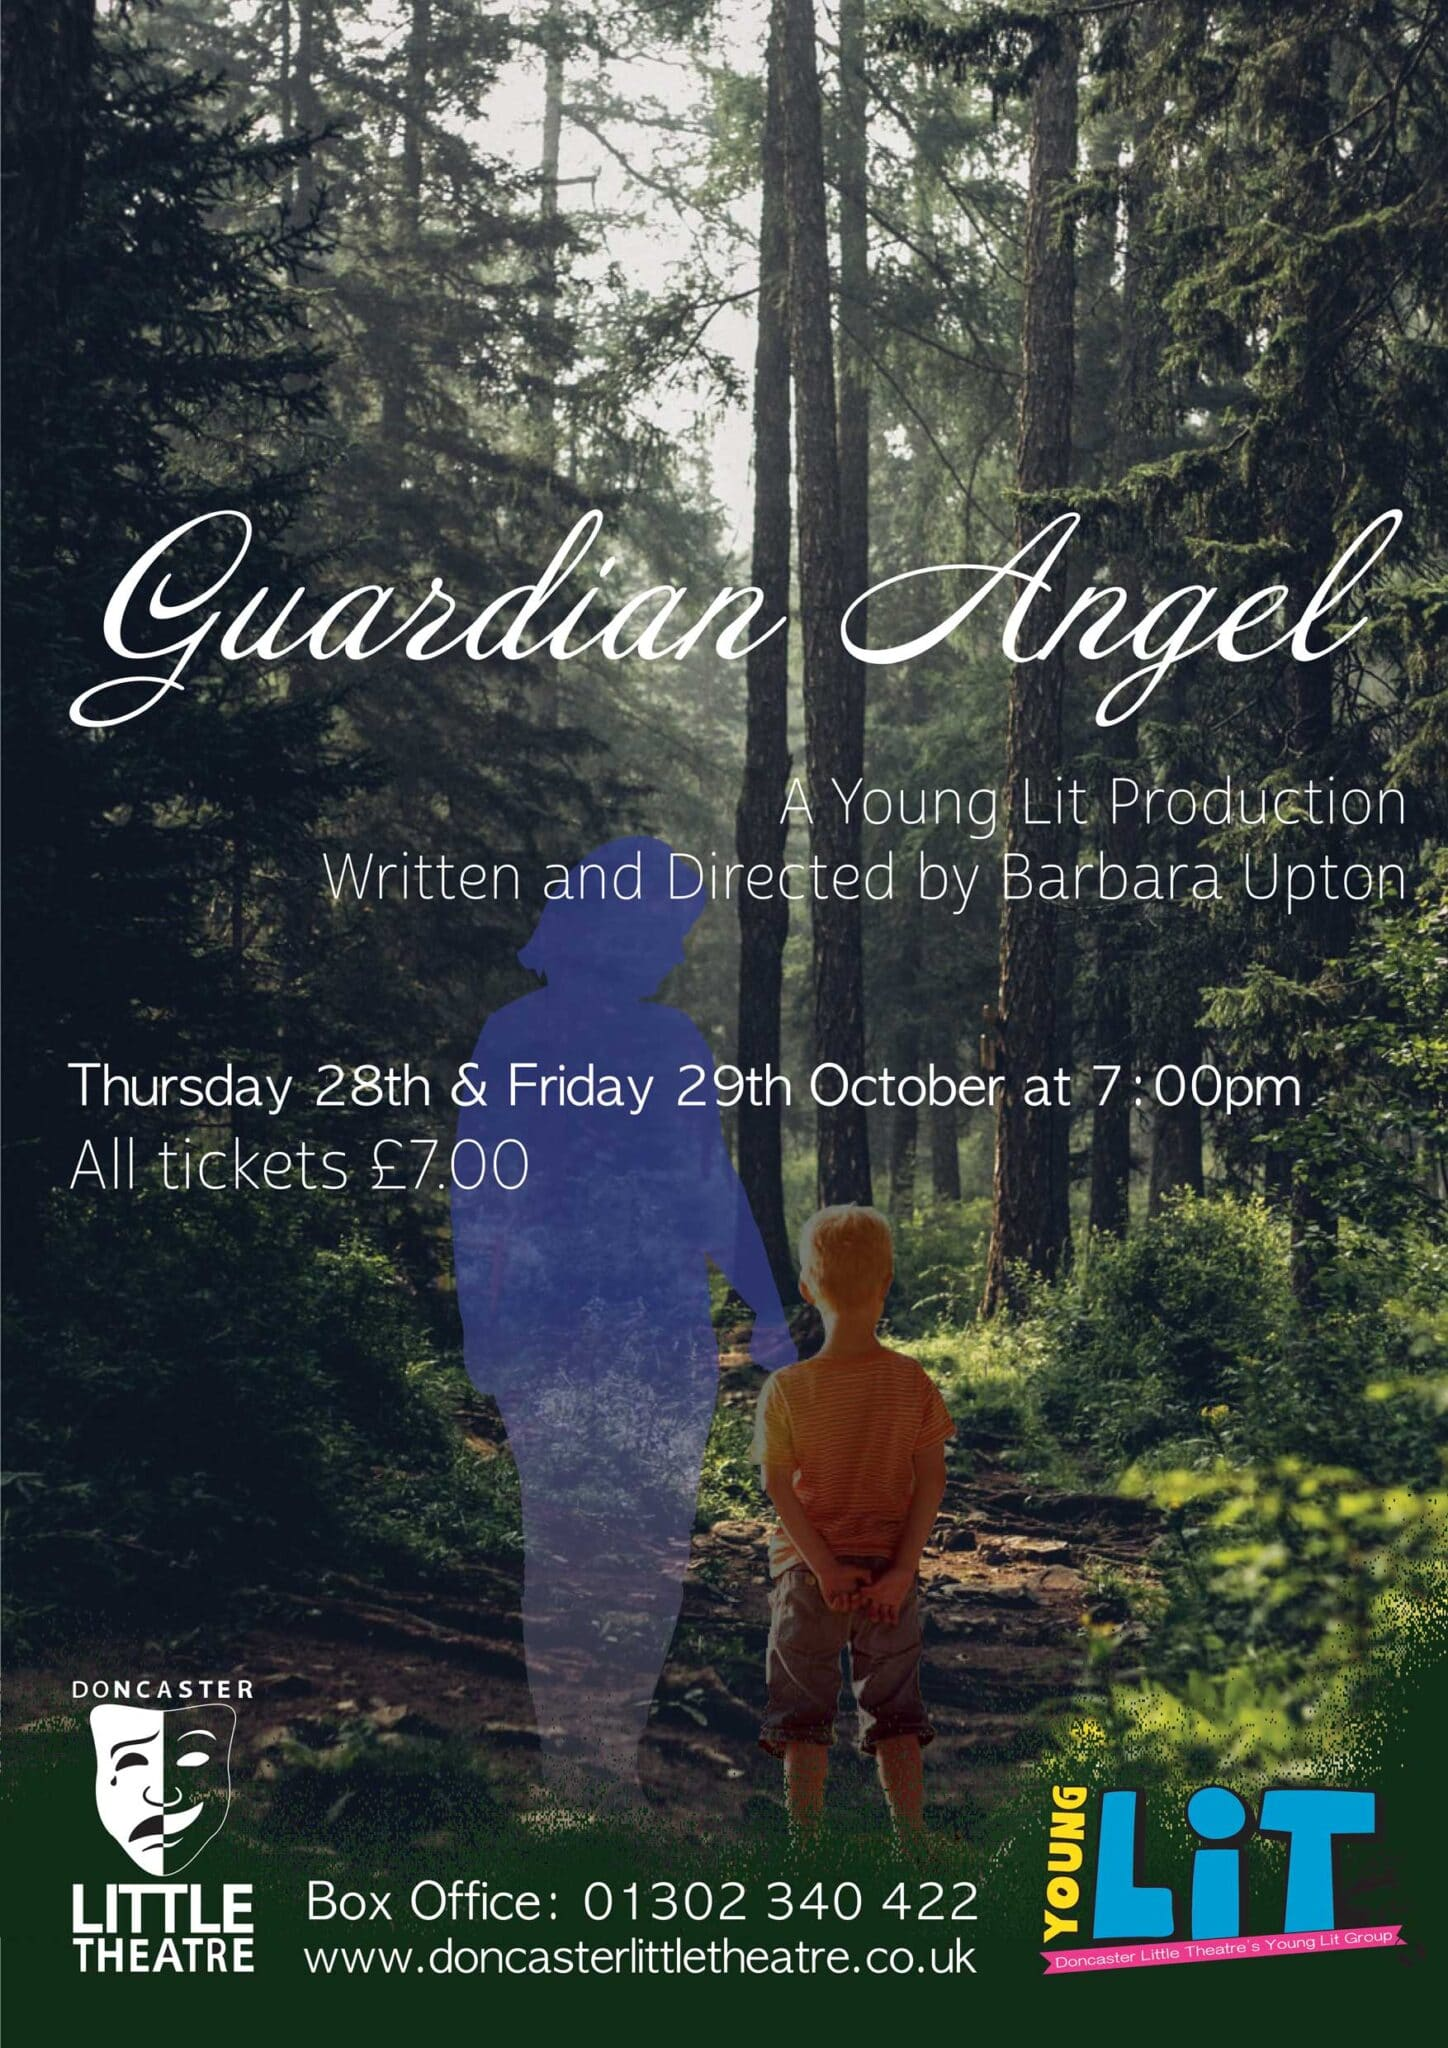 Guardian Angel – A Young Lit Production